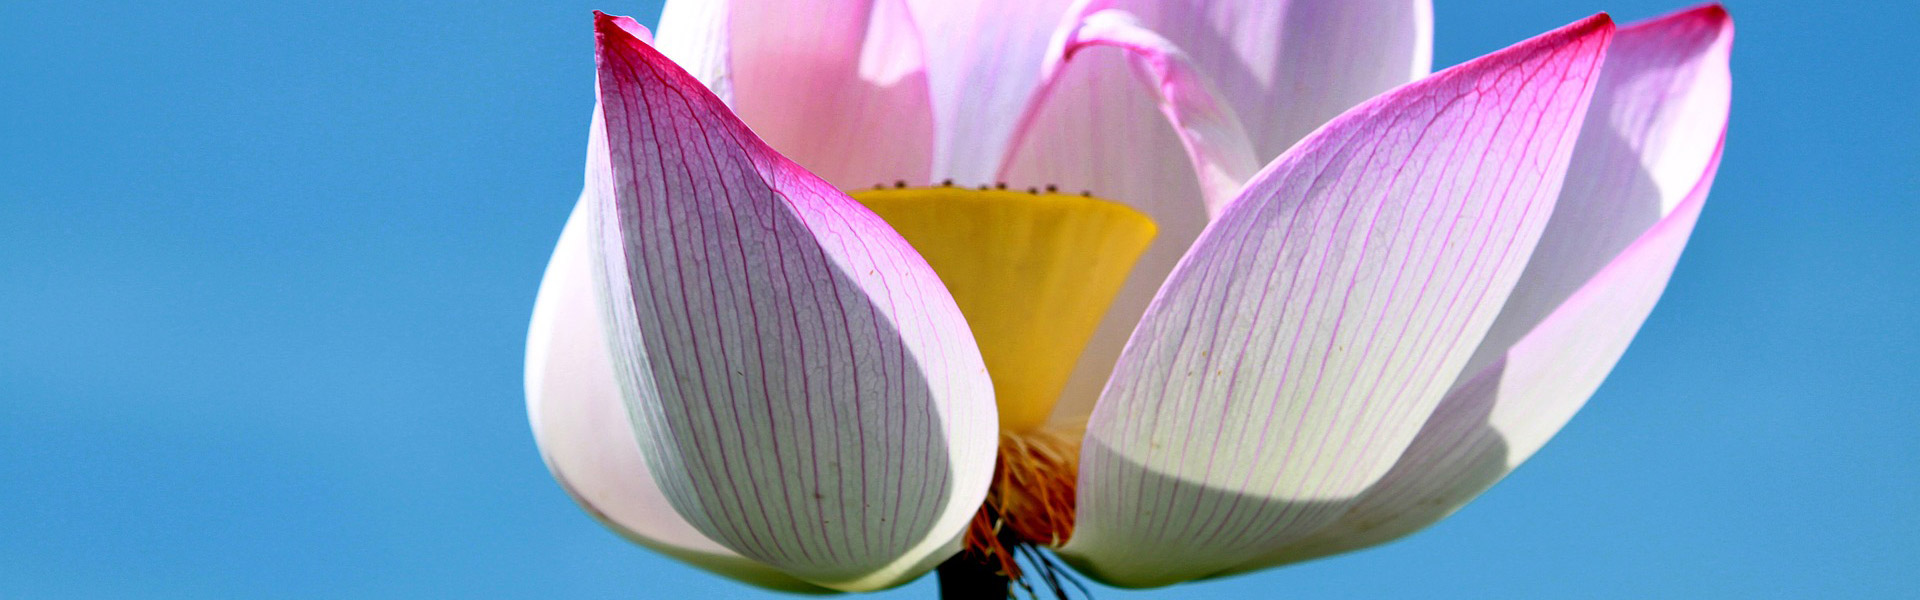 Vietnam's National Flower: The Lotus | Wendy Wu Tours Blog